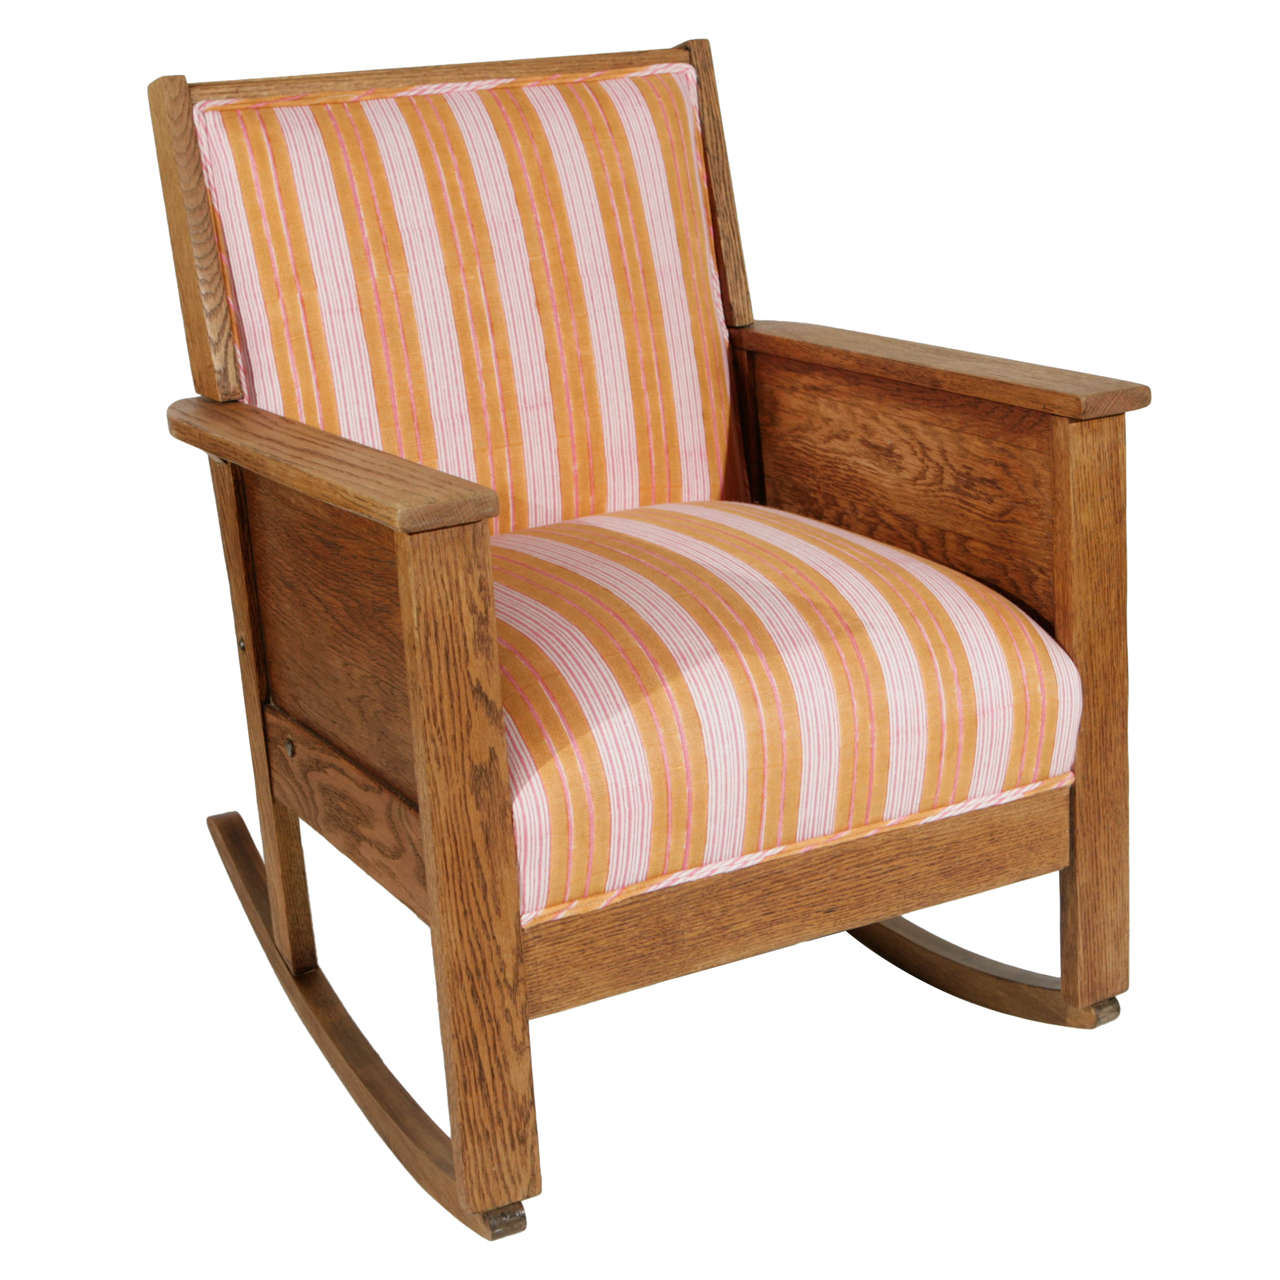 craftsman rocking chair styles patio dining chairs clearance x jpg